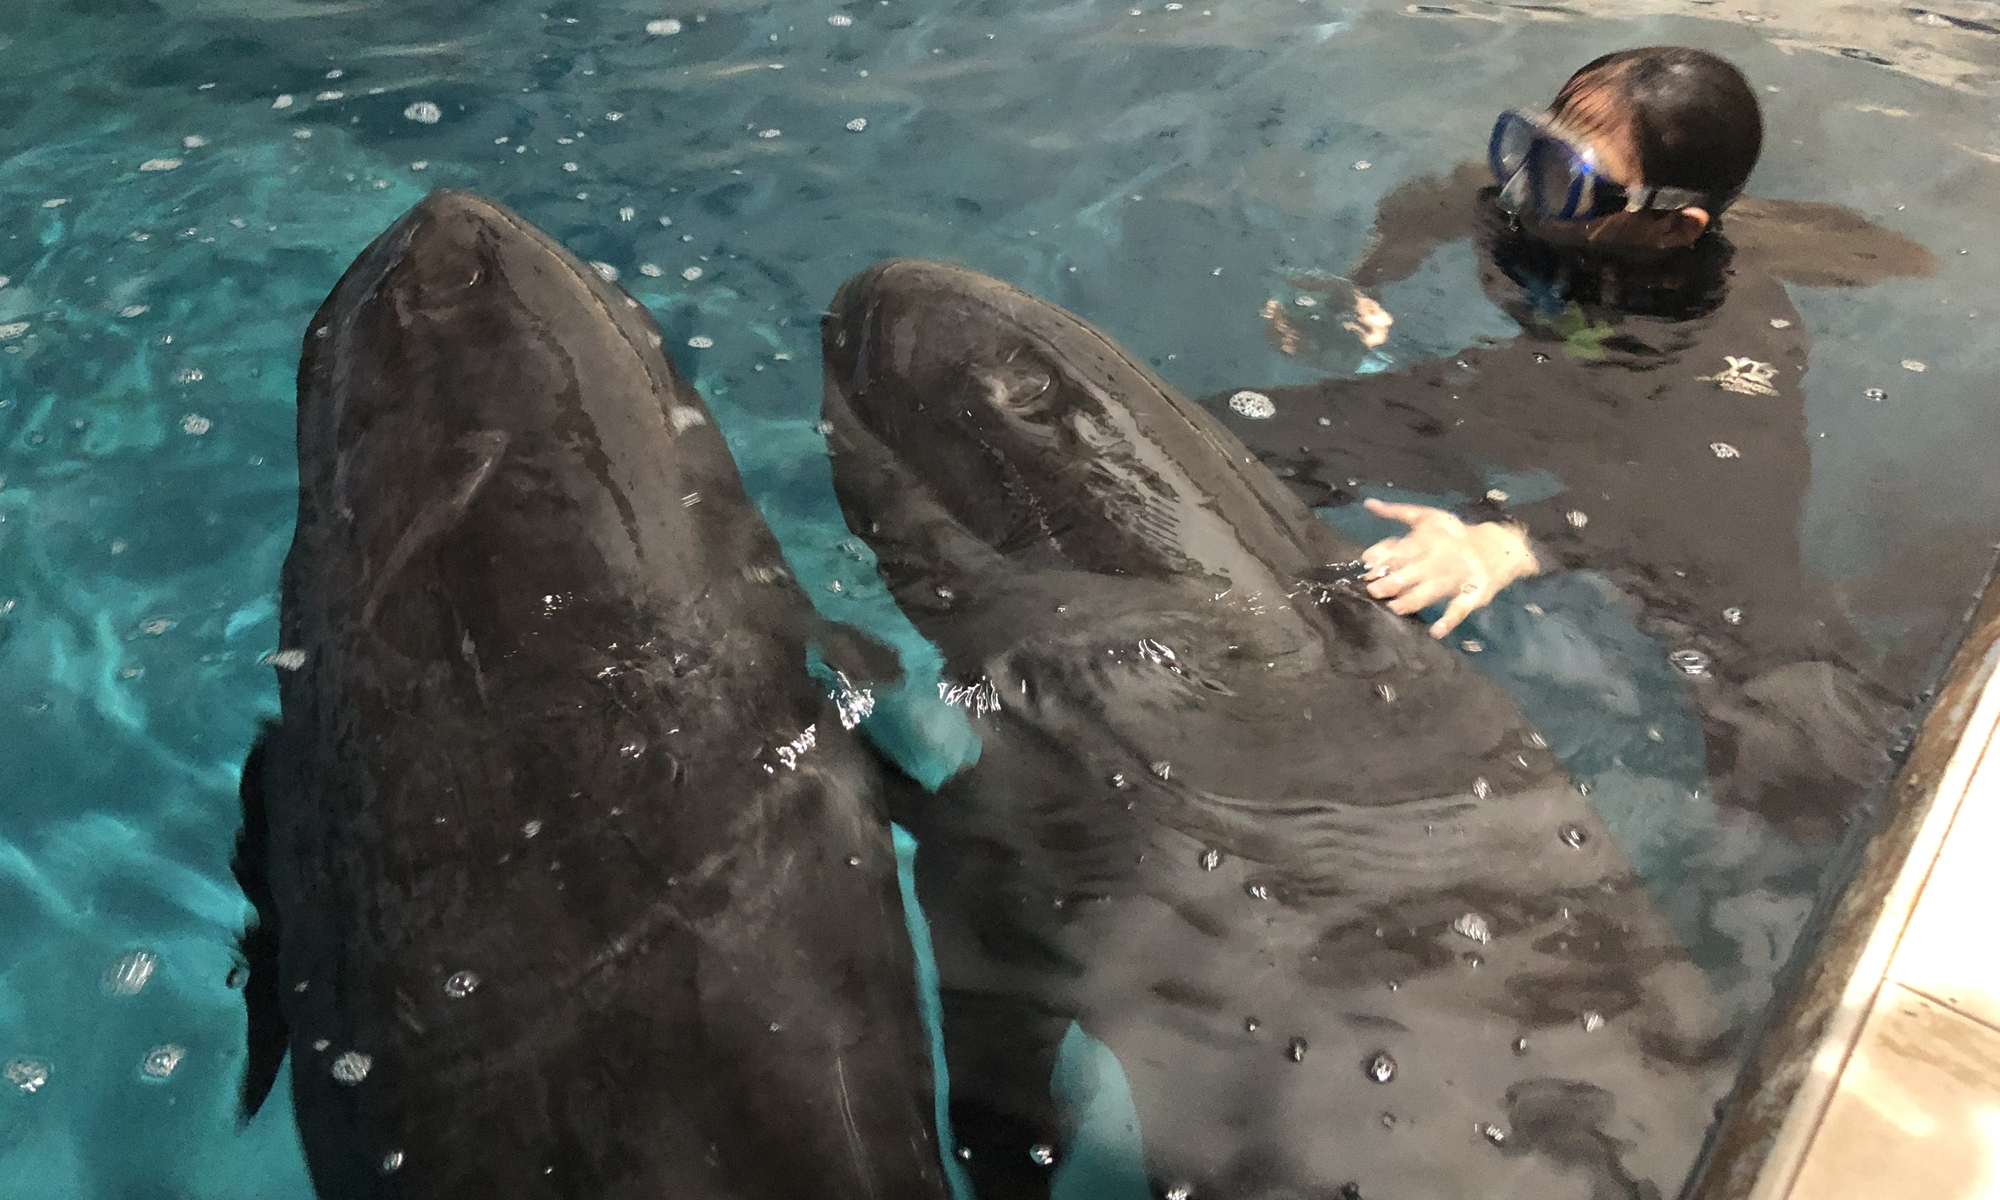 Among the nine rescued whales, two were sent to Taizhou Sea World. Photo: VCG